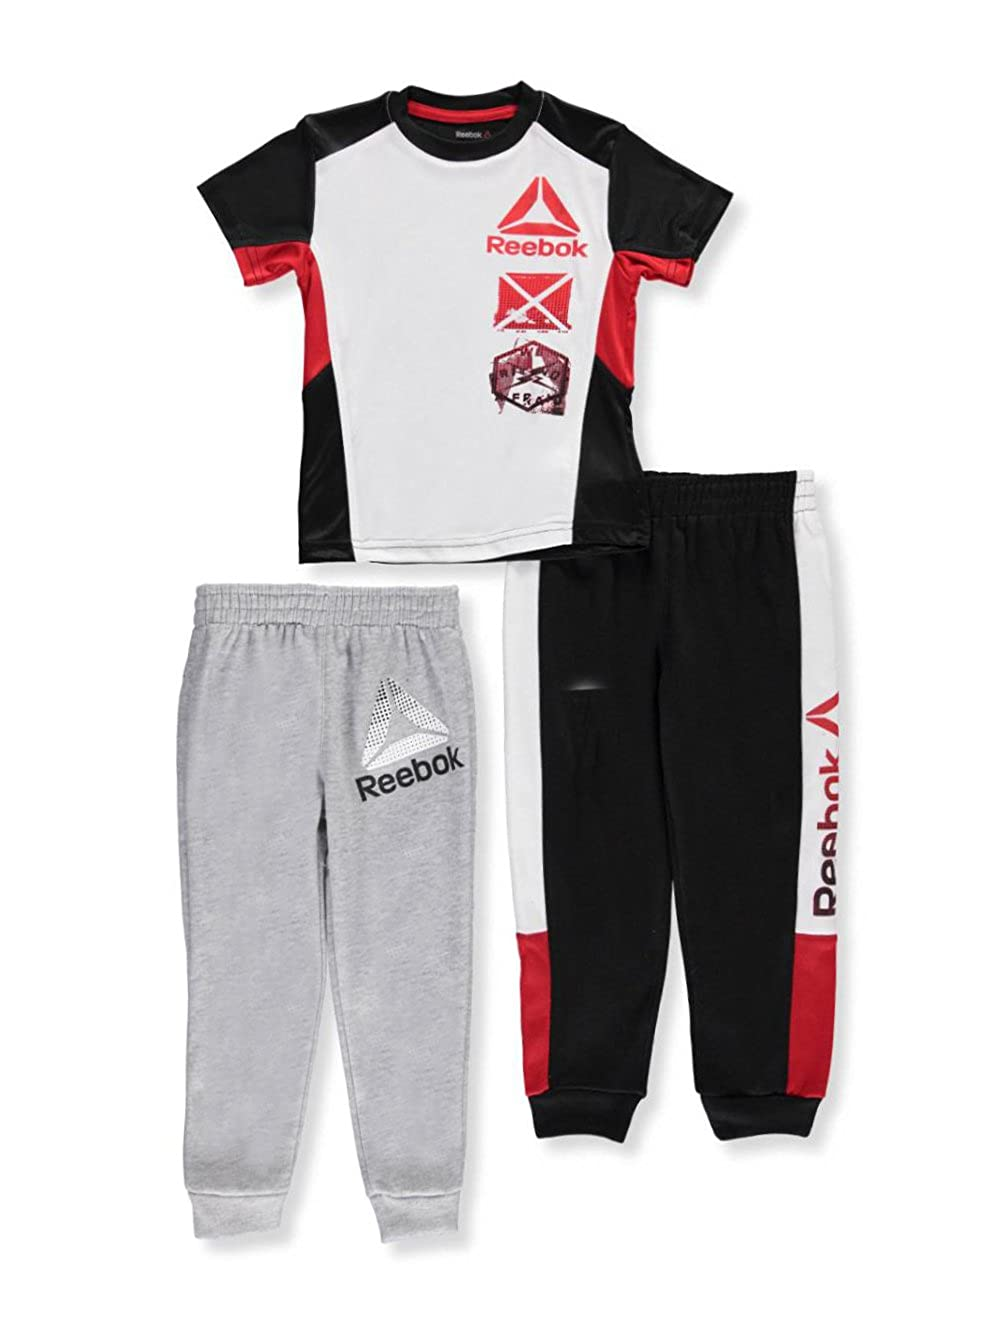 Reebok Boys' 3-Piece Outfit 2t